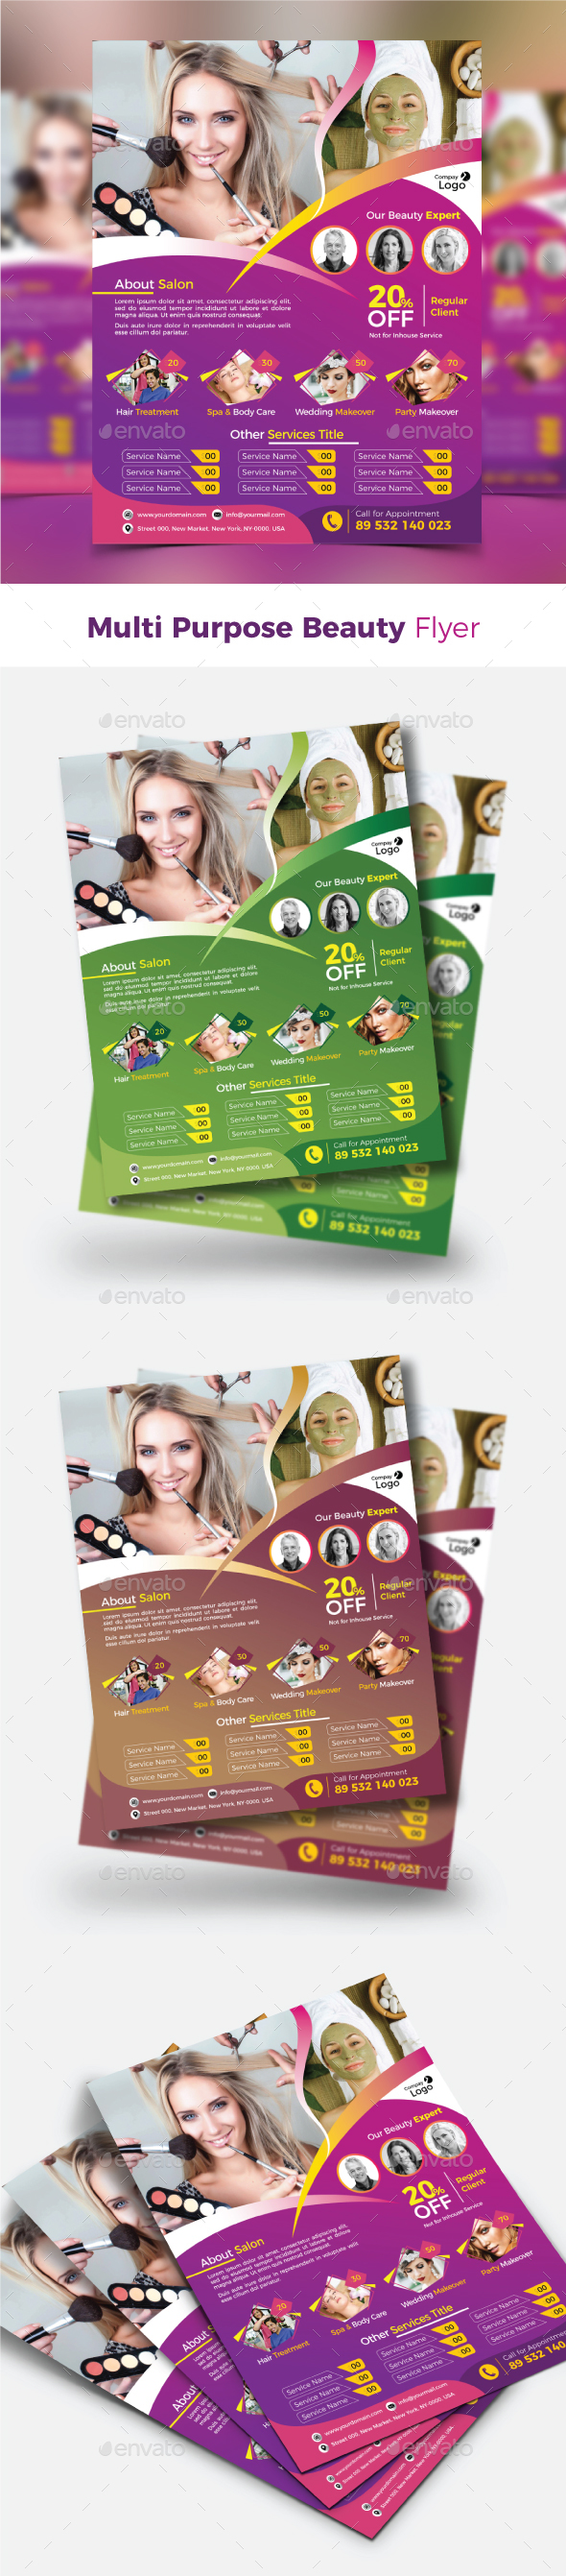 Multi Purpose Beauty Flyer - Commerce Flyers